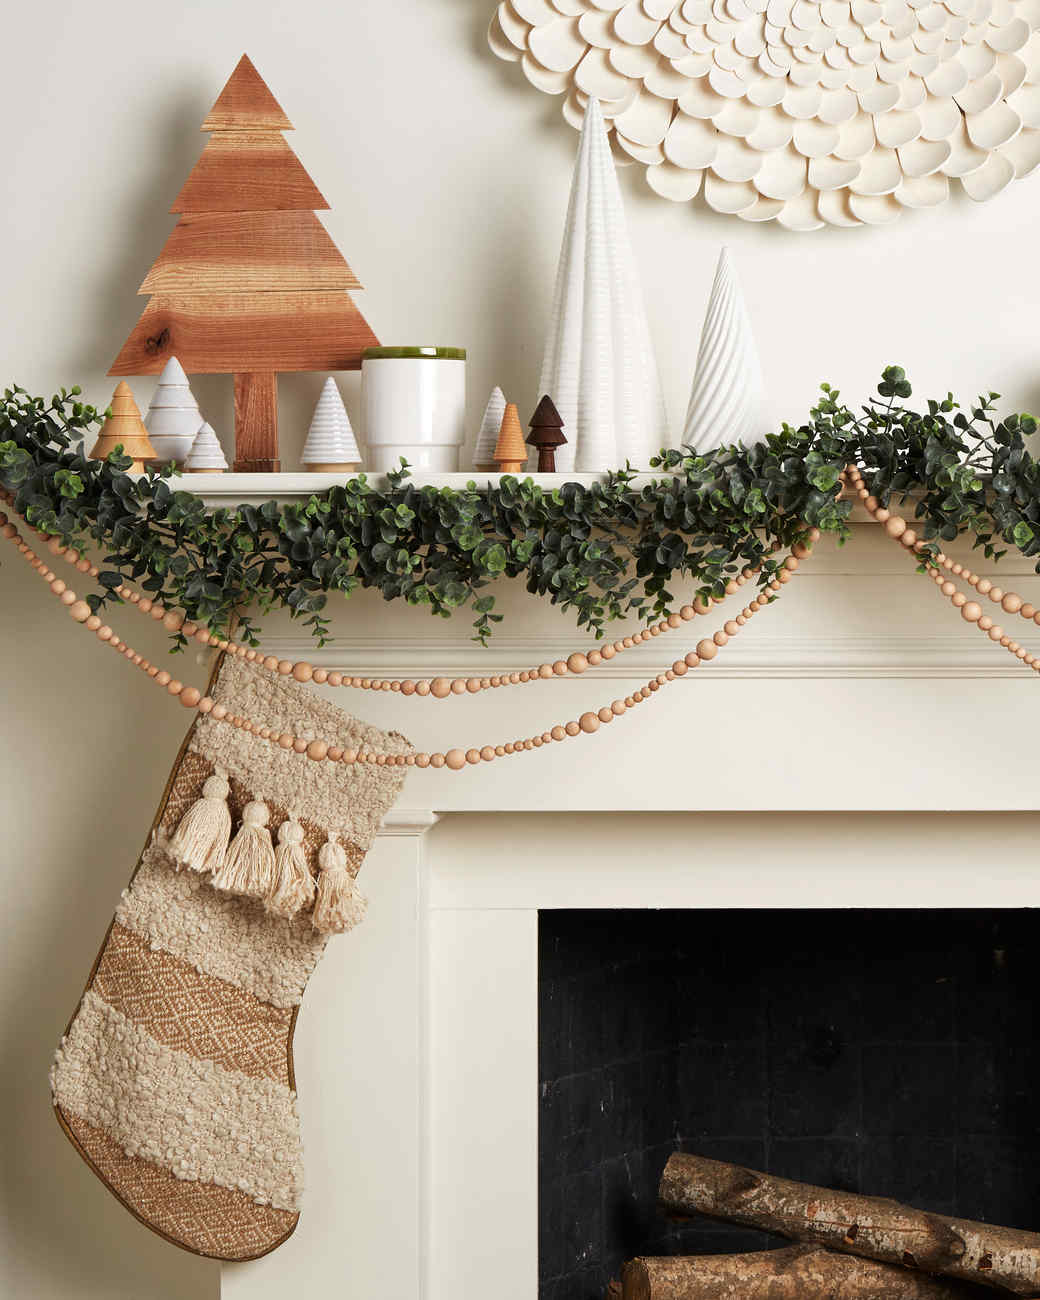 Scandinavian-inspired mantle white with wooden beaded garland greenery and trees